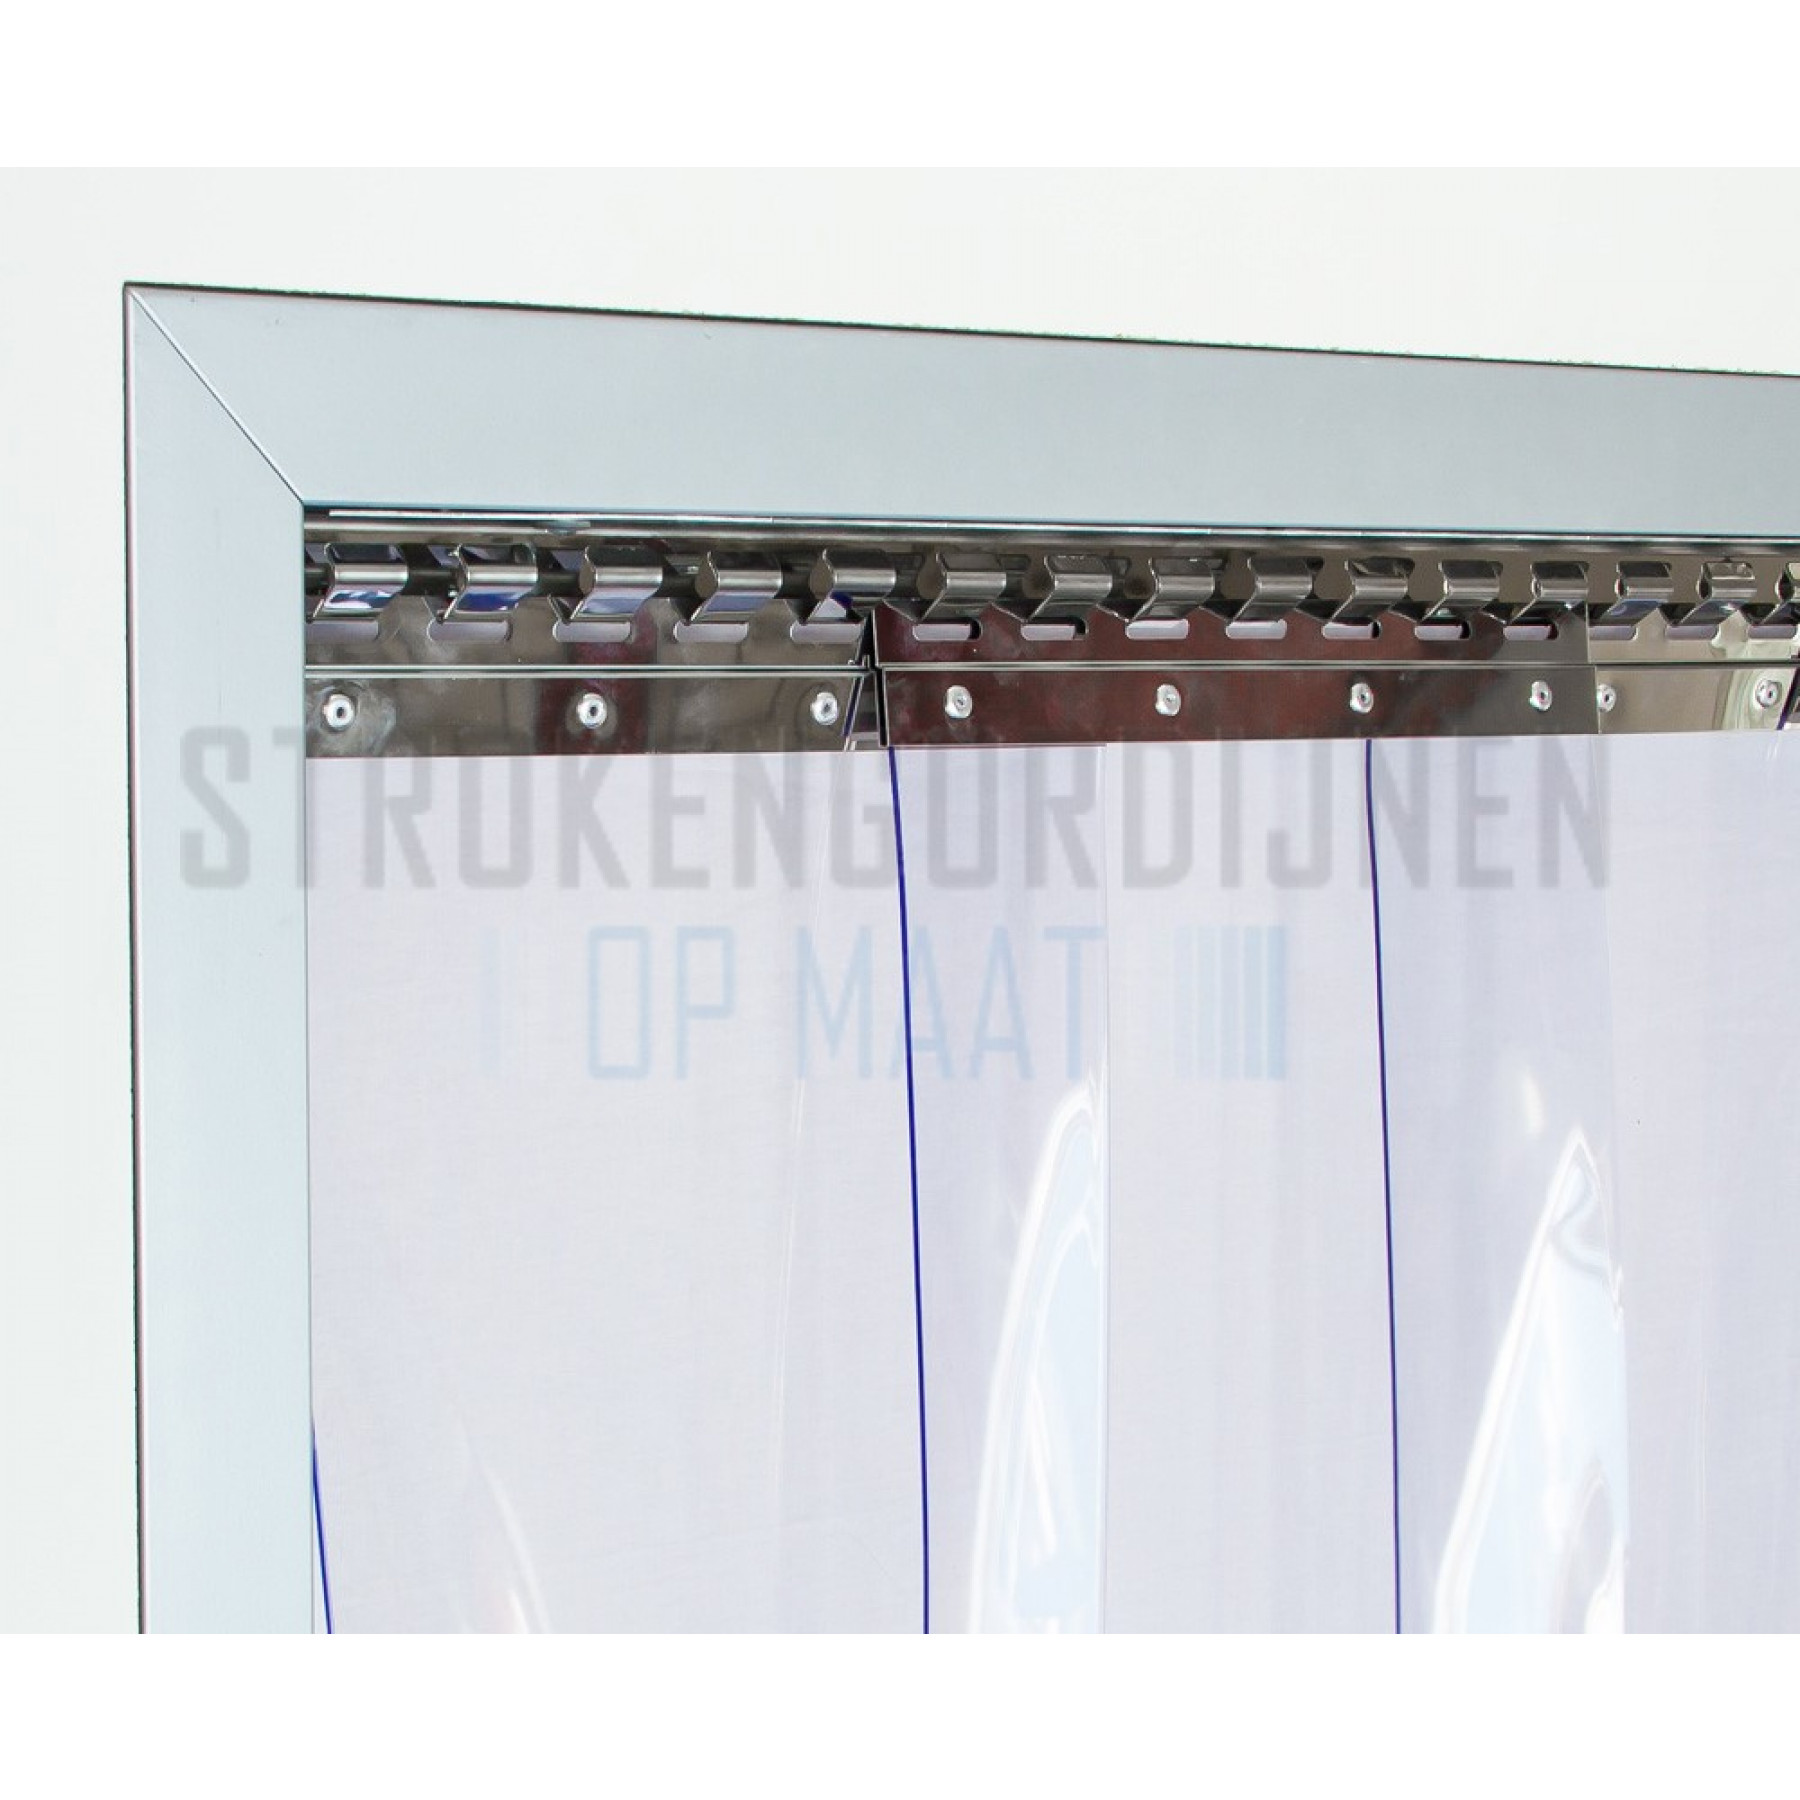 PVC stroken op maat, anti-statisch, 200mm breed, 2mm dik, transparant